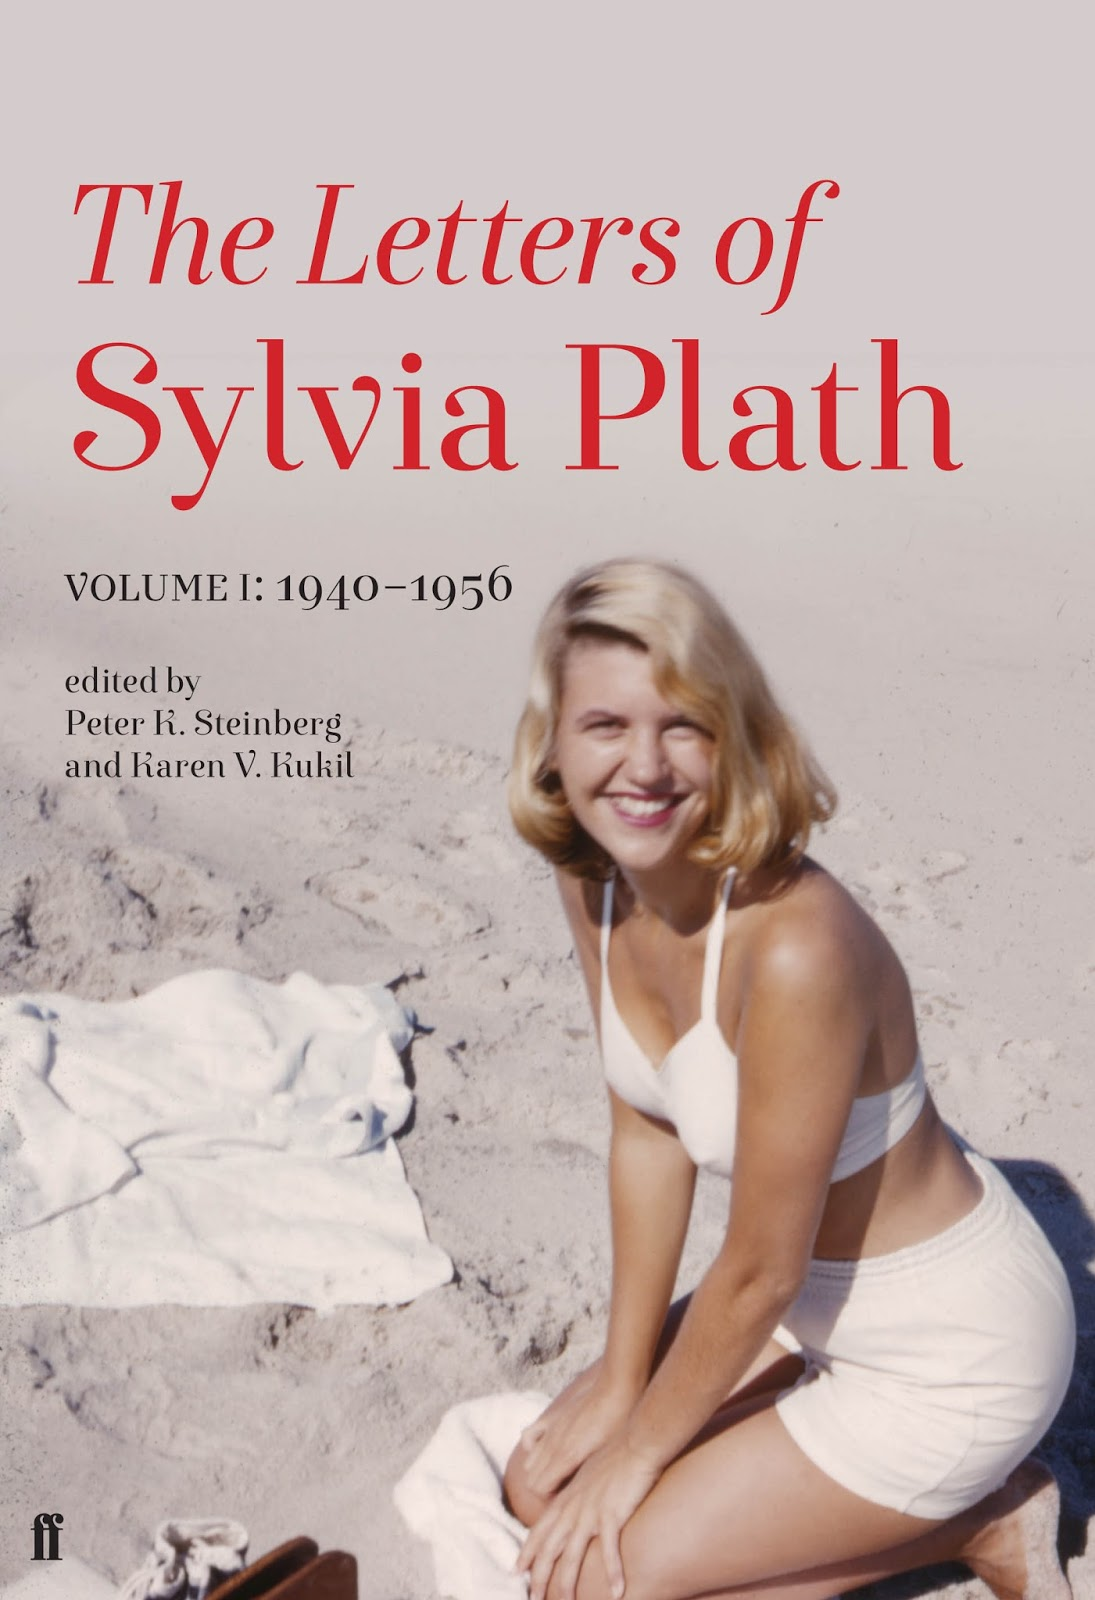 a biography of sylvia plath The independent culture curse that lasted half a century: new biography casts fresh light on sylvia plath's legacy 1/2 sylvia plath: a biography (1987) in.